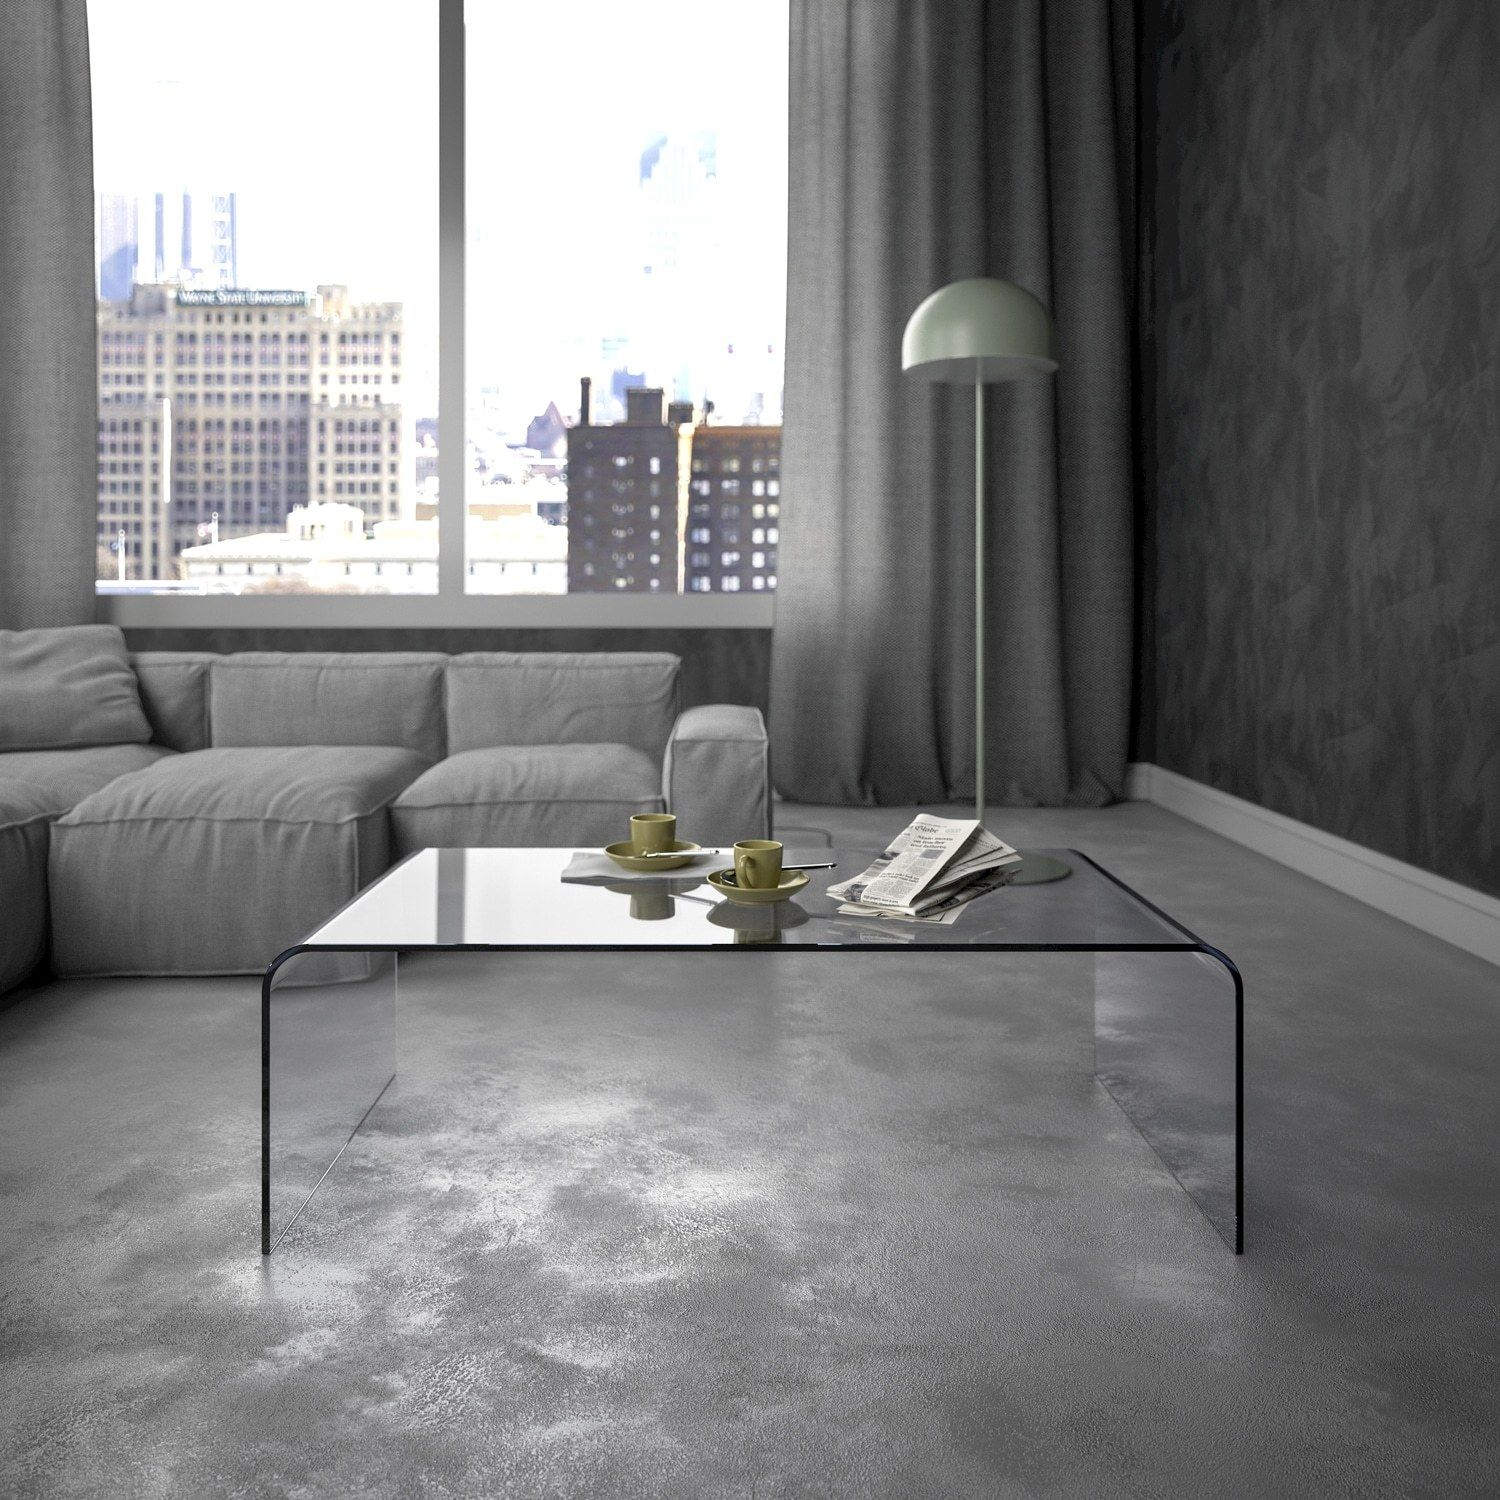 Glass coffee table in living room classic curved glass coffee table  klarity  glass furniture